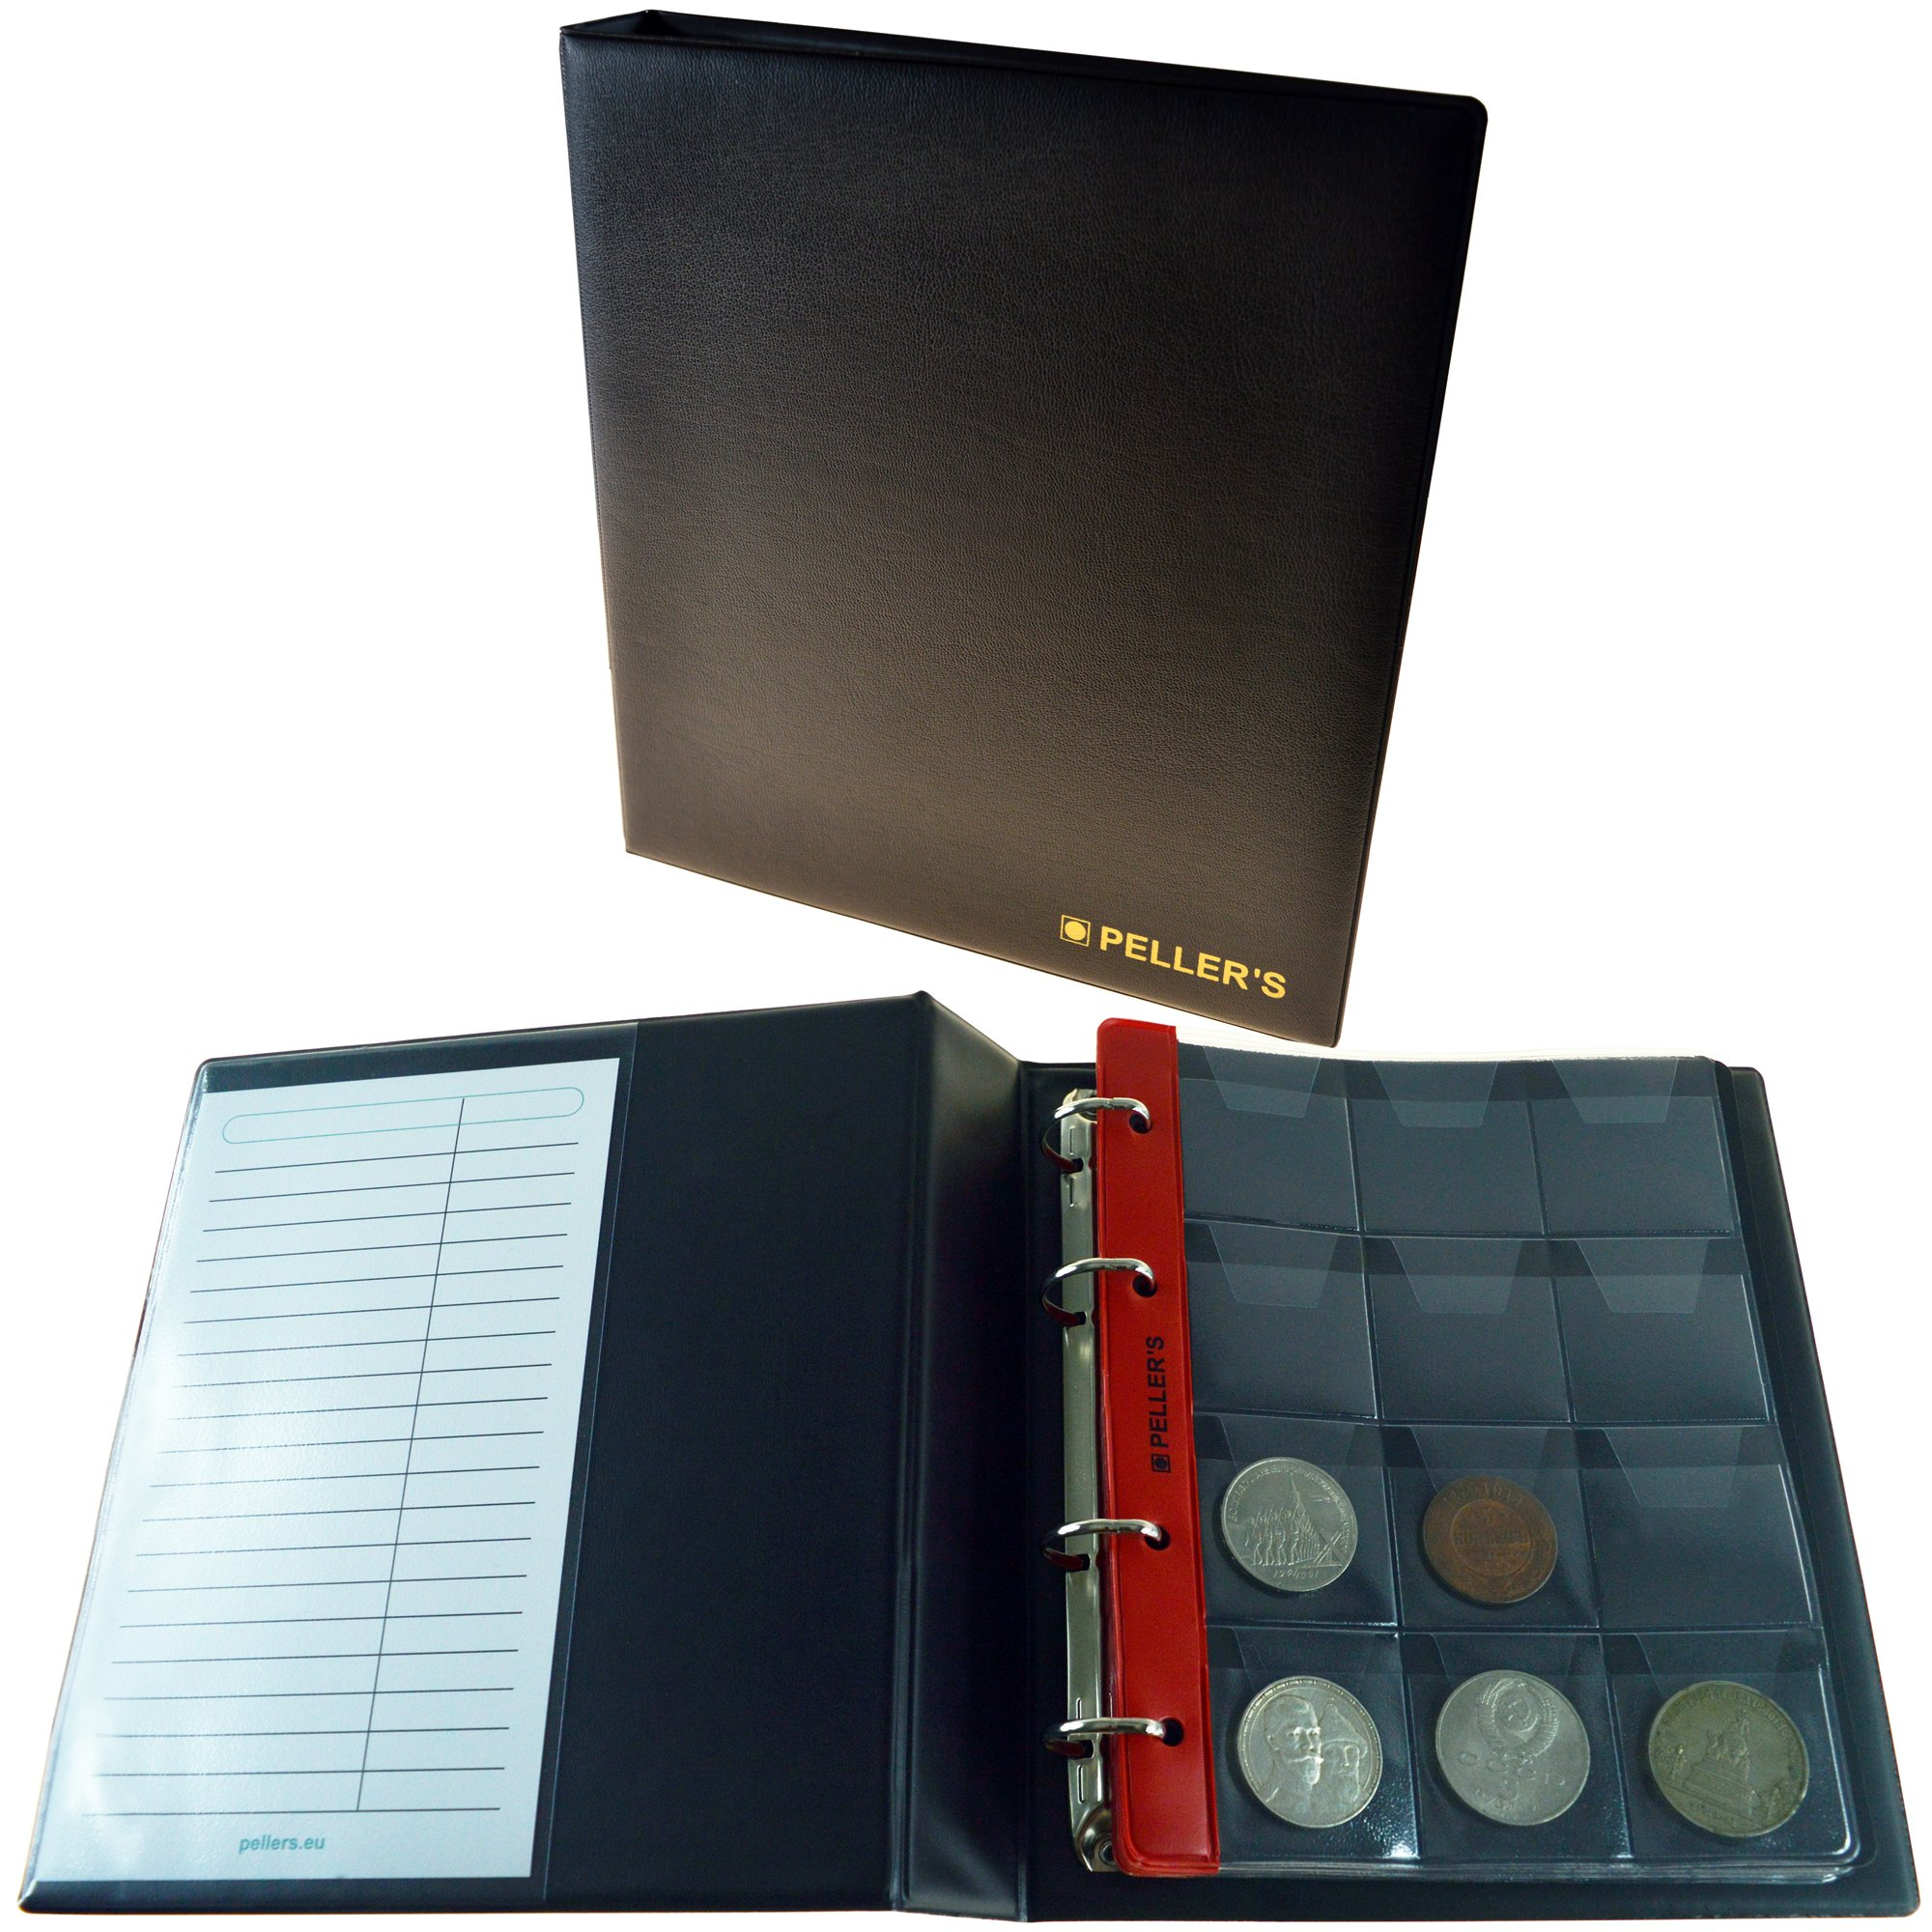 PELLER'S Coin Album for 120 Big Coins with a Diameter up to 1.57'' (40mm). 10 Pages with 12 Pockets 1.81'' x 1.97'' (46x50mm) on The Page & 10 Interleaves. Model M.